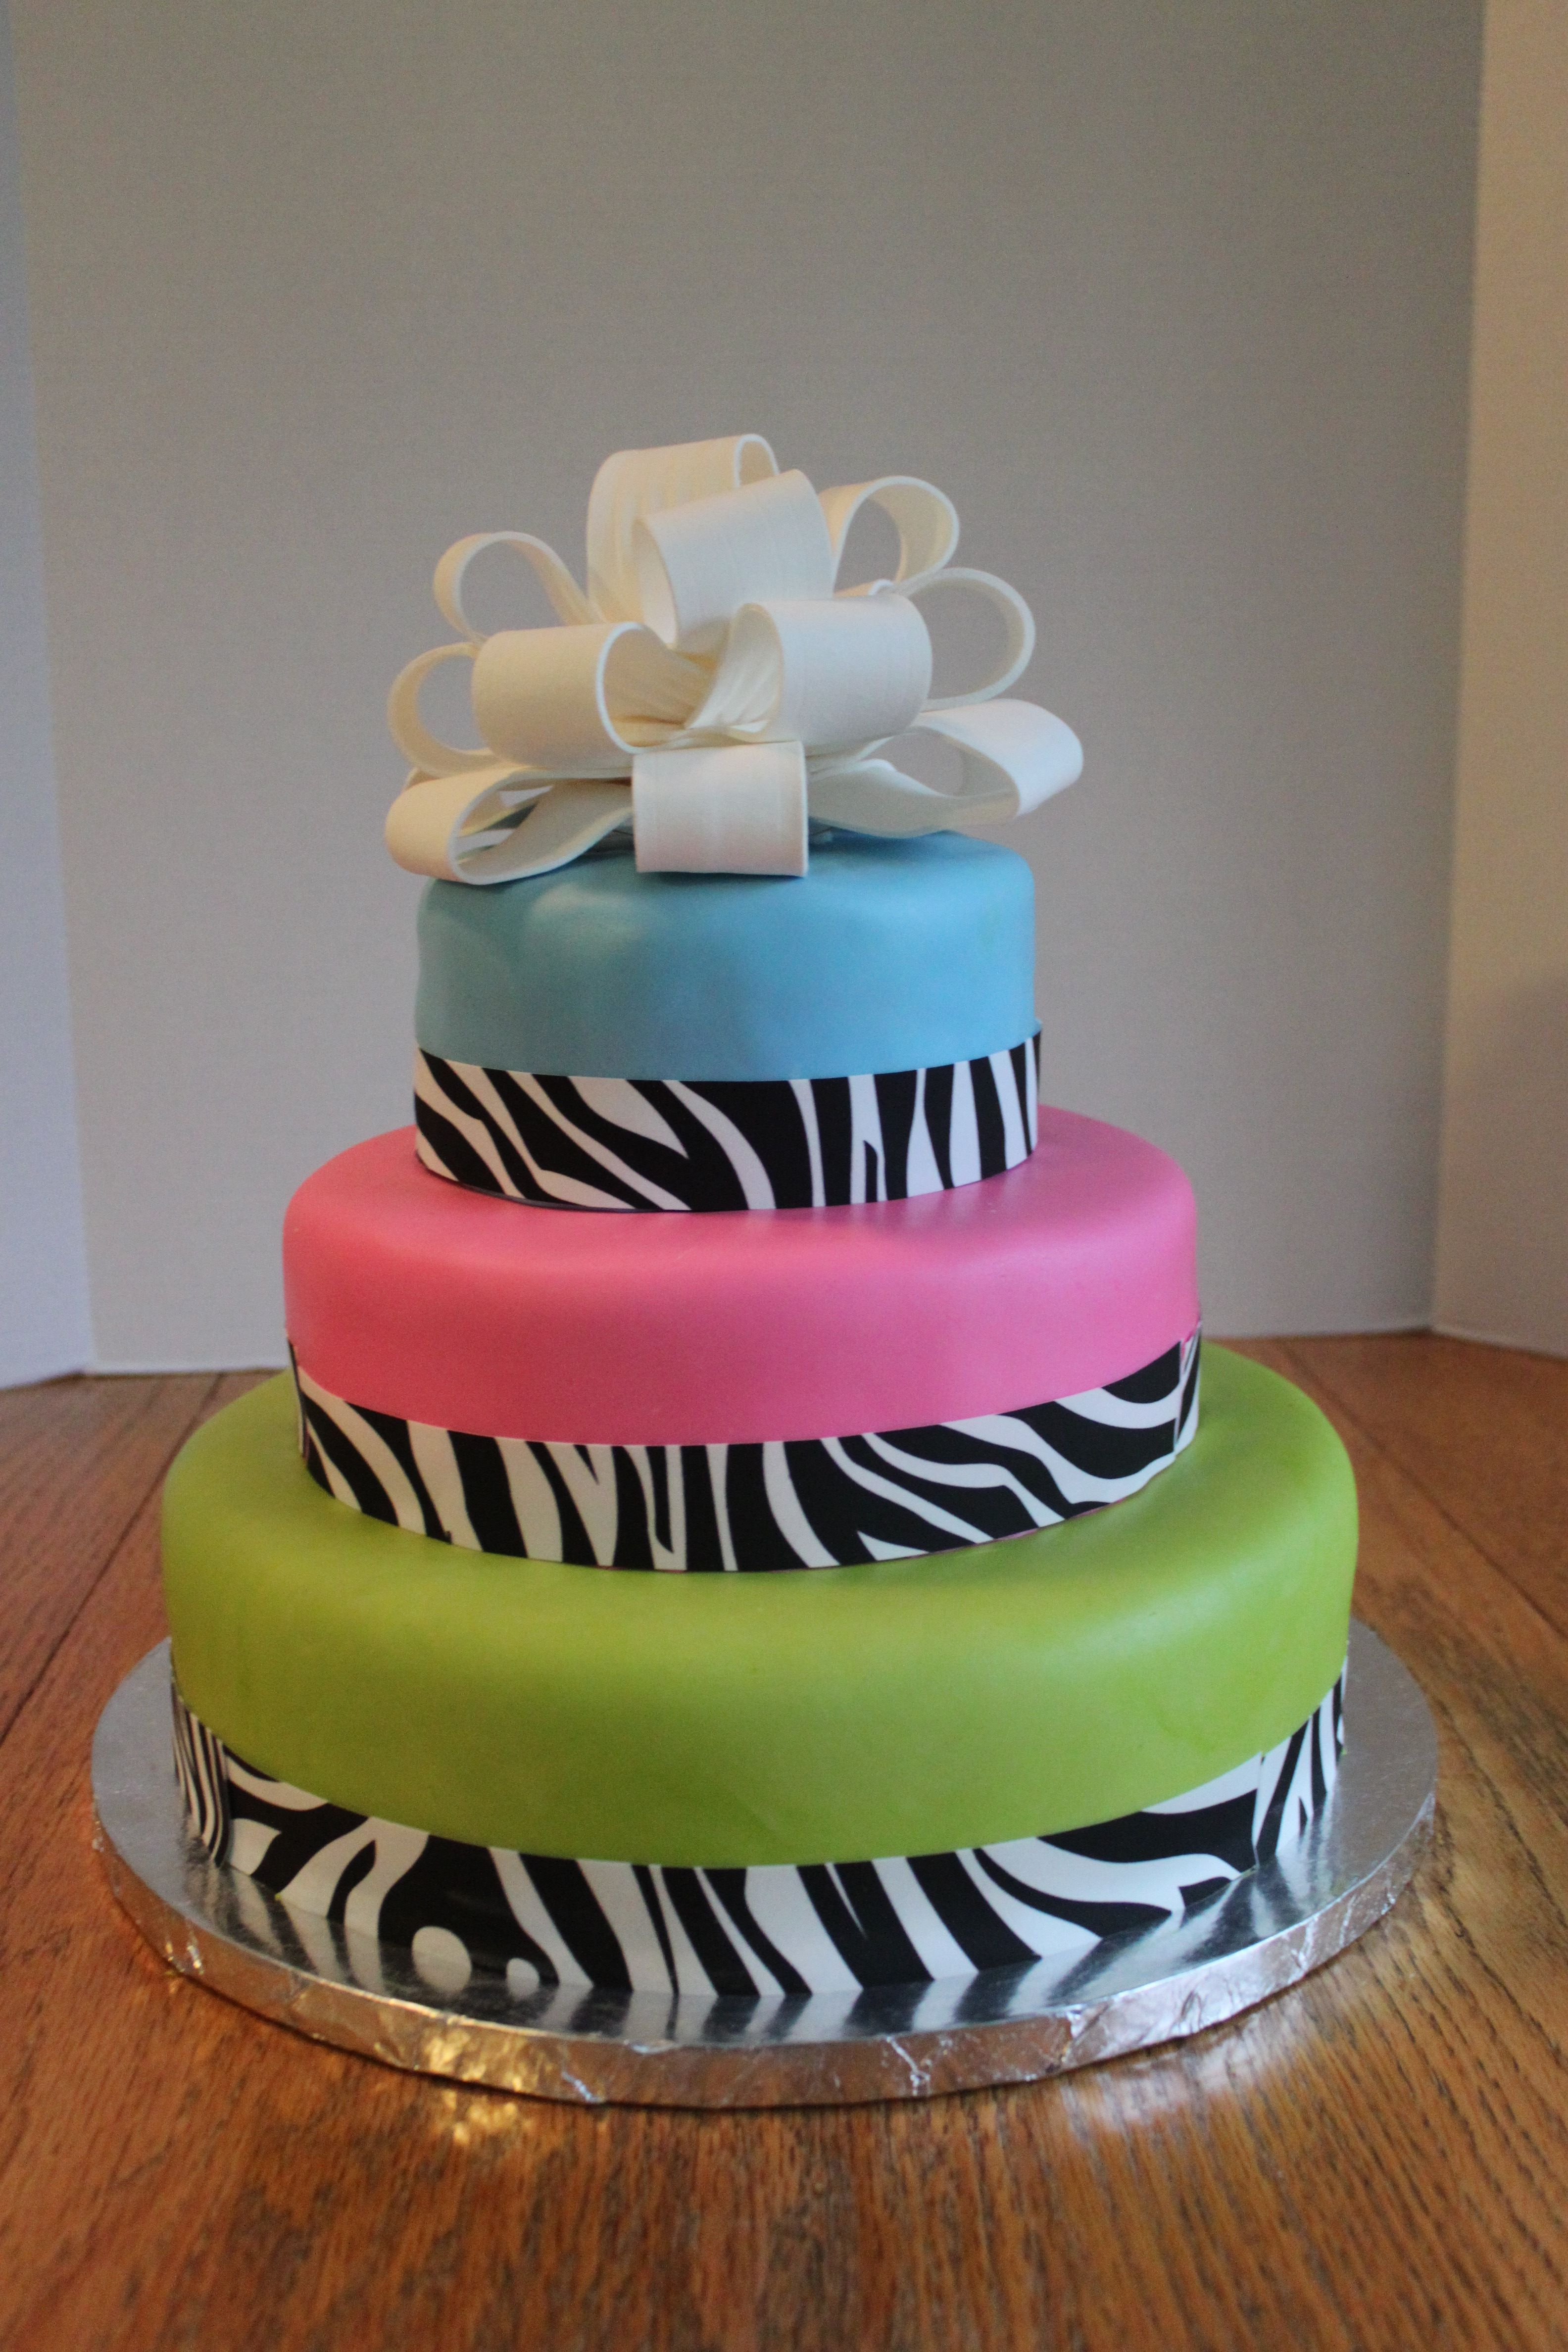 Awesome Birthday Cakes I Like This Cool Birthday Cake Cool Birthday Cakes Pinterest